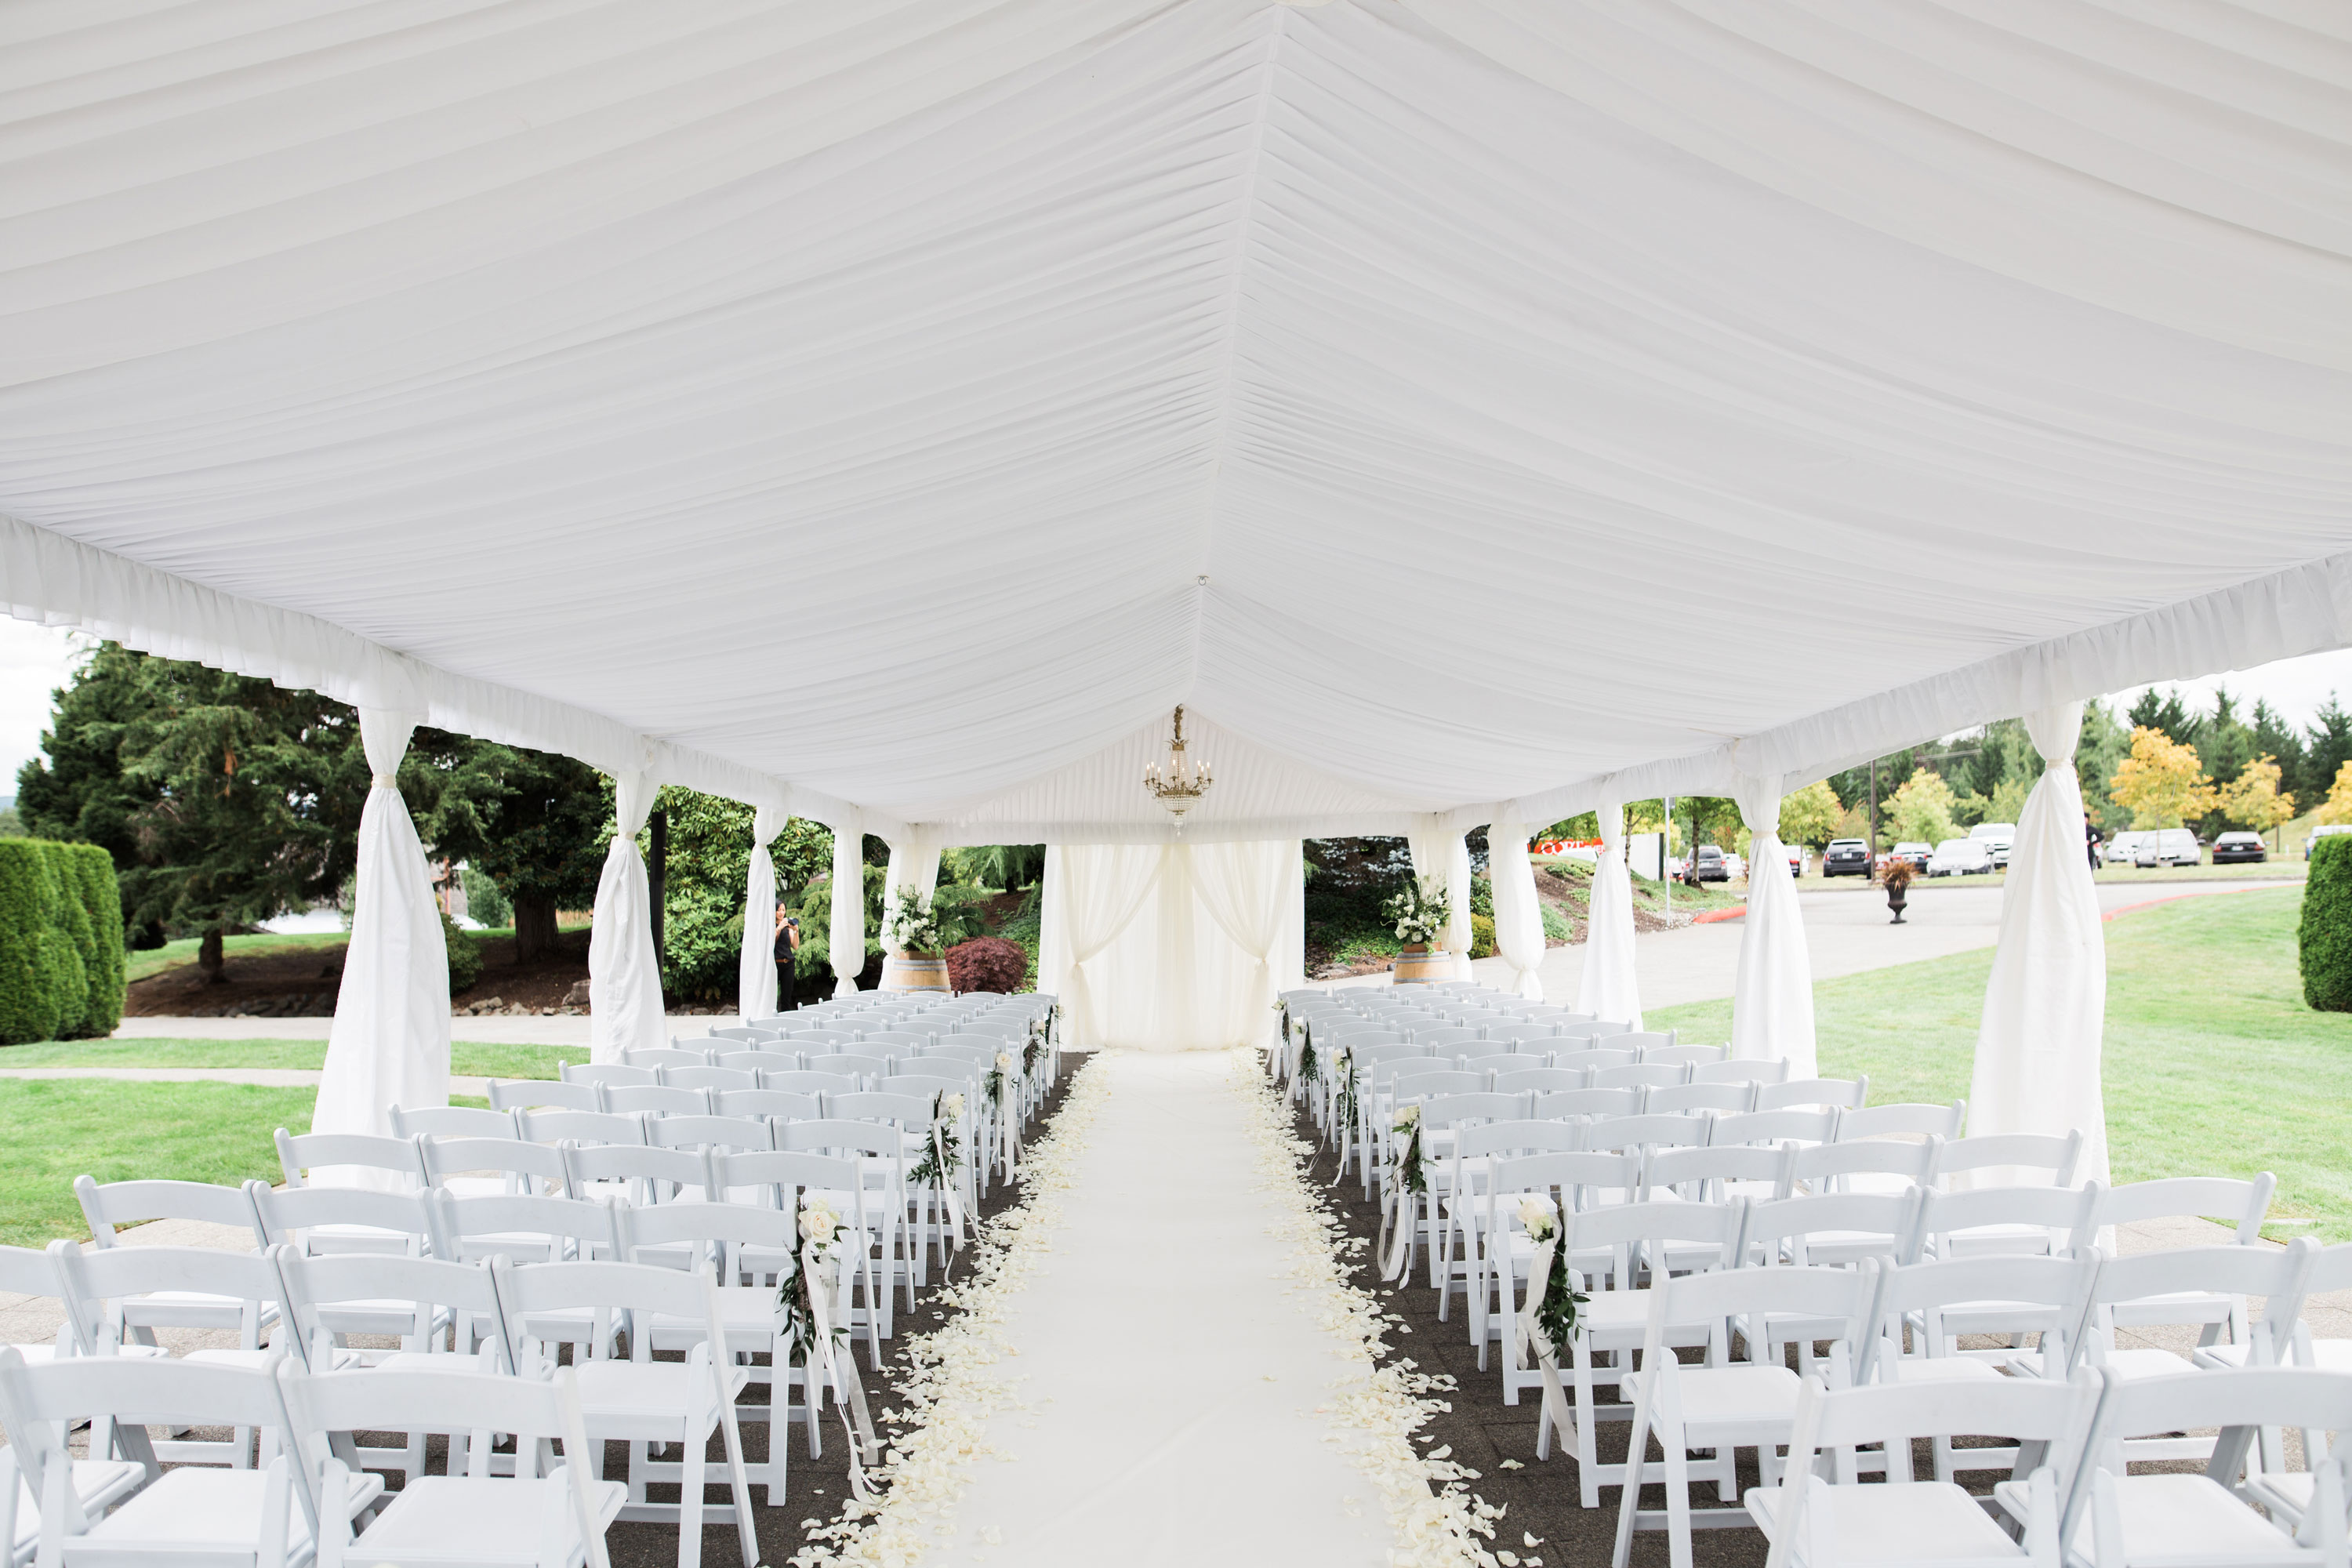 nicolle-and-david-wedding-drape-chandelier